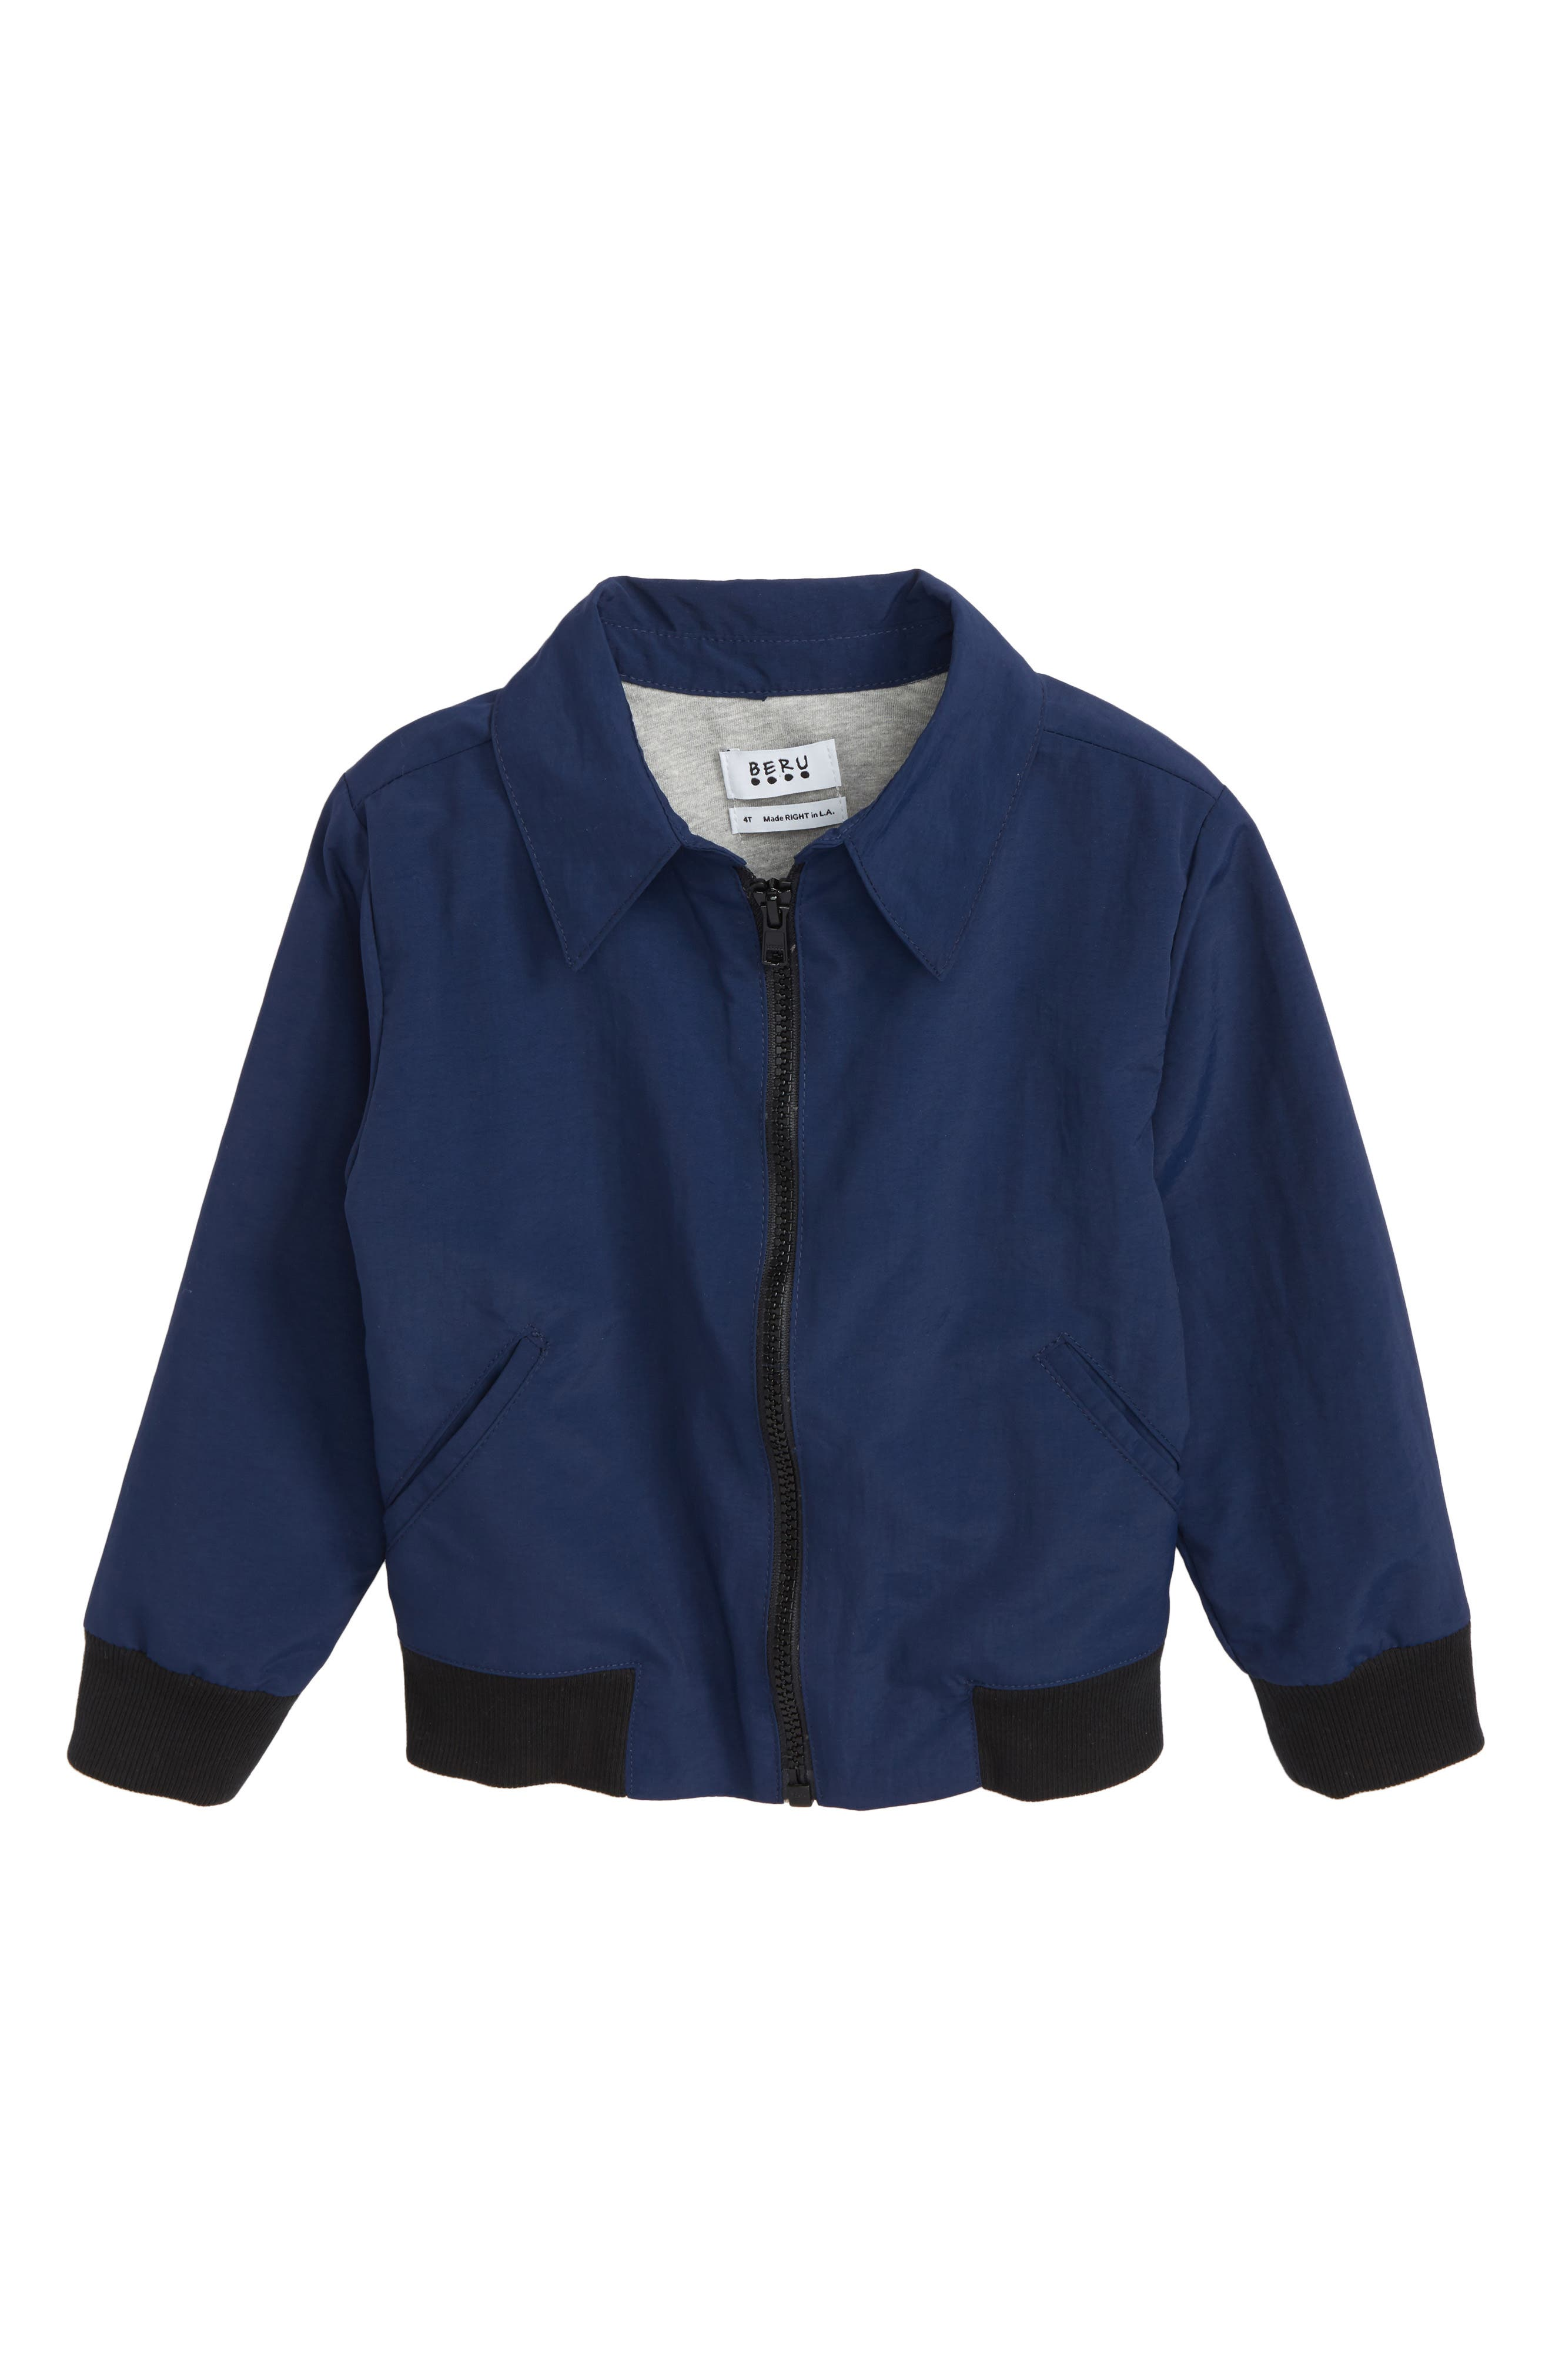 Riles Jacket,                         Main,                         color, Navy